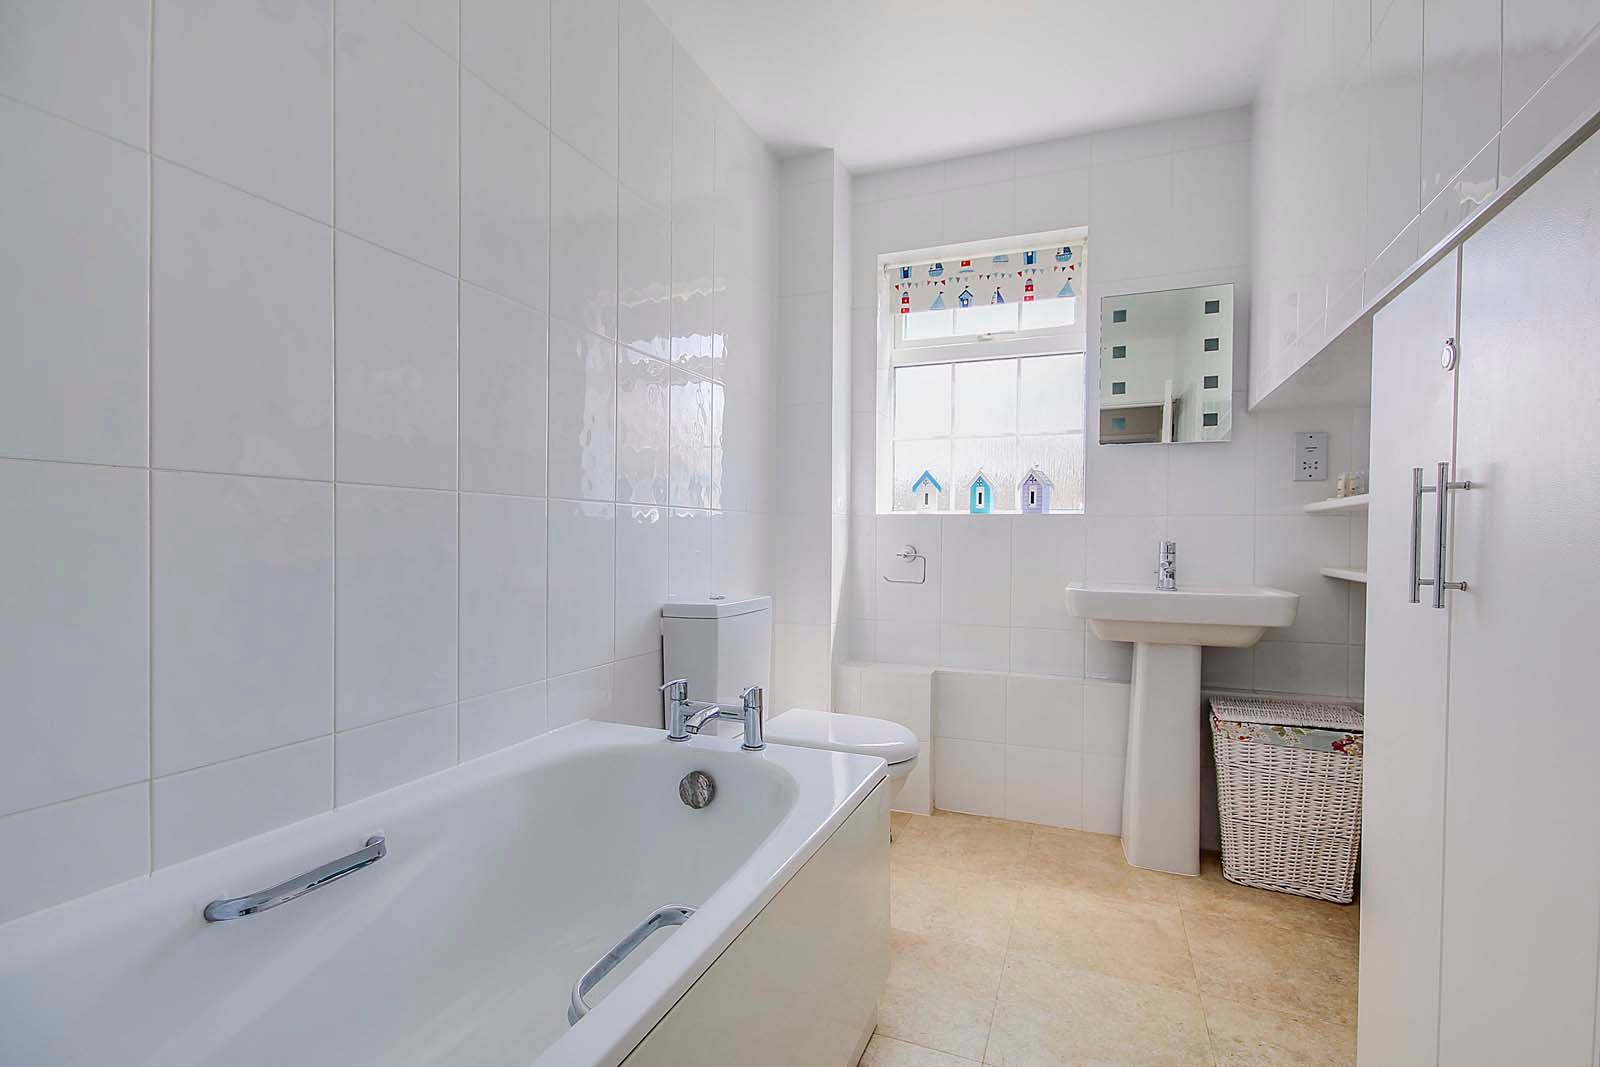 2 bed  for sale in Ferring Marine 5